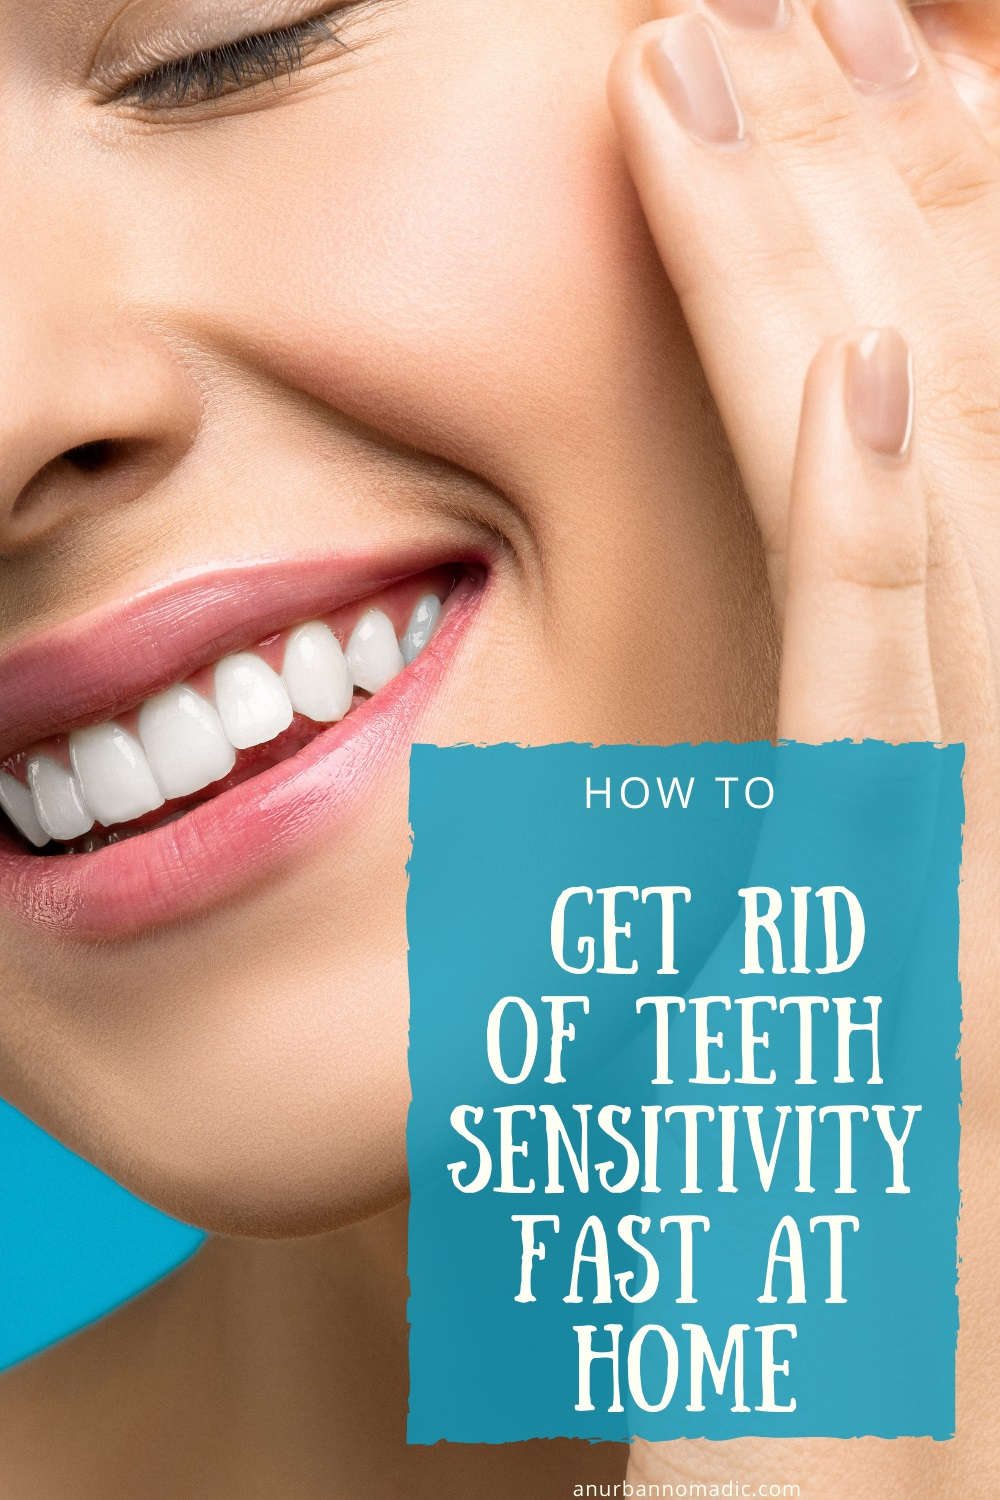 How to get rid of Teeth Sensitivity fast at home